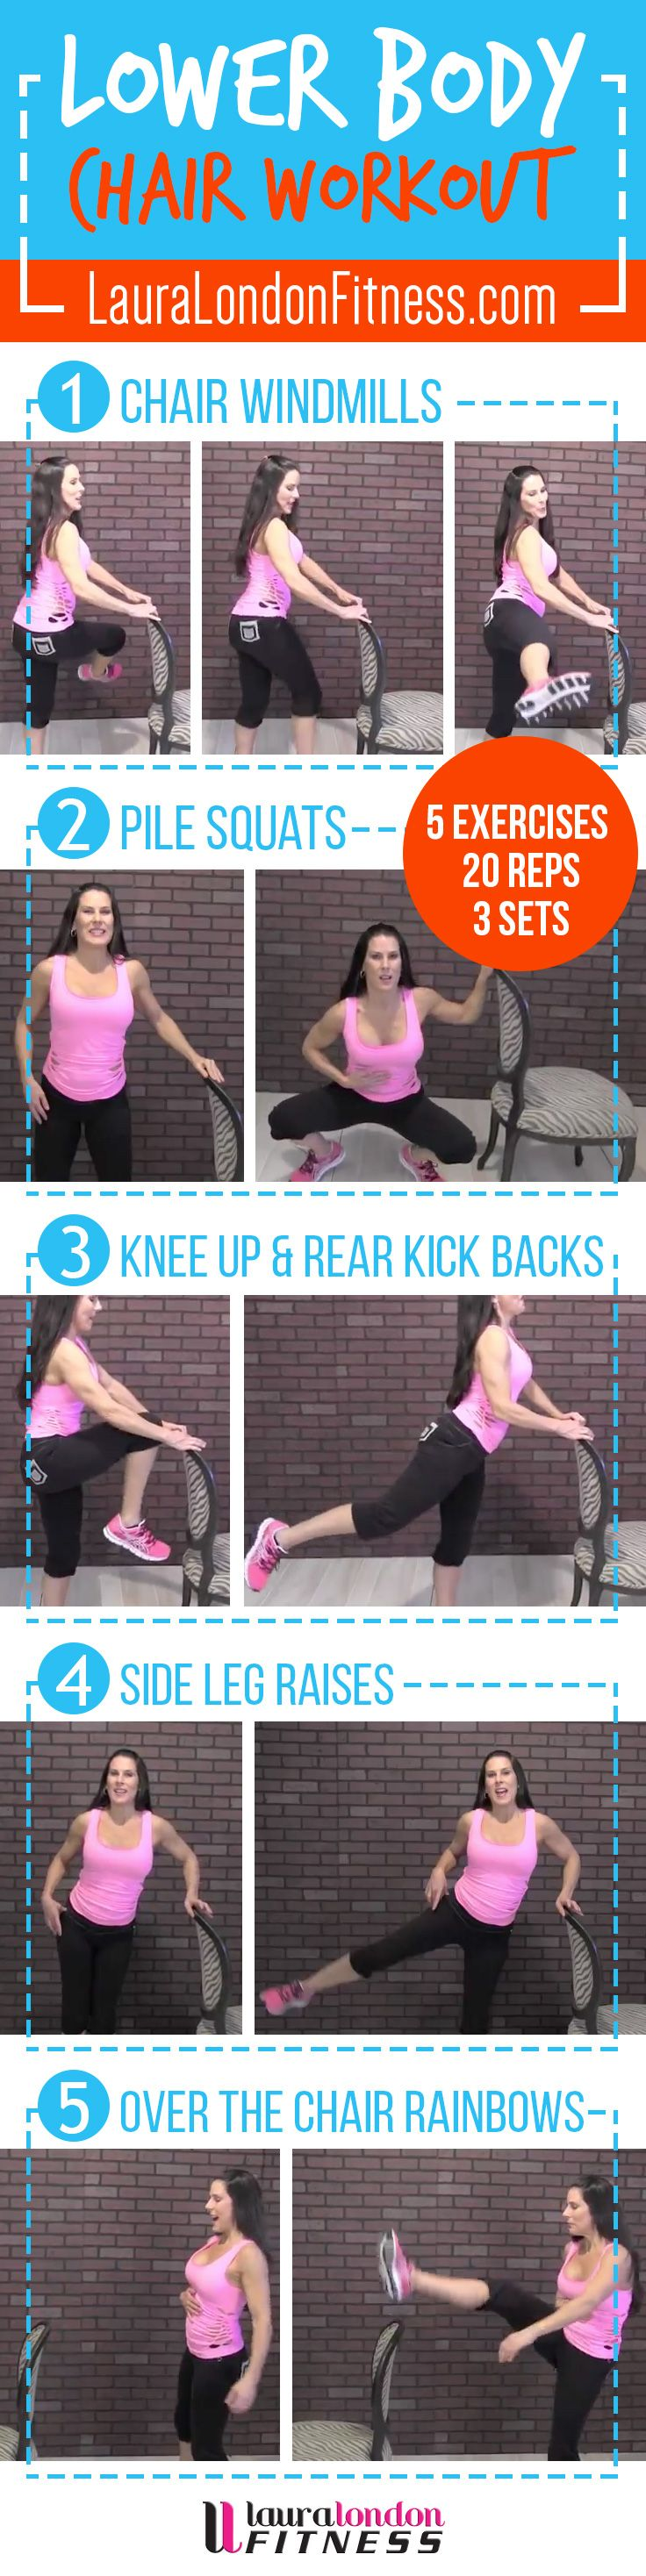 Lower Body Chair Workout Join me in a lower body workout using a chair.  You are going to love this one.  Great for a quick workout when you don't have time to get to the gym.  Full Video Here:  https://www.youtube.com/watch?v=IBclN2Gt-KY  #fitness #homeworkouts #lauralondonfitness